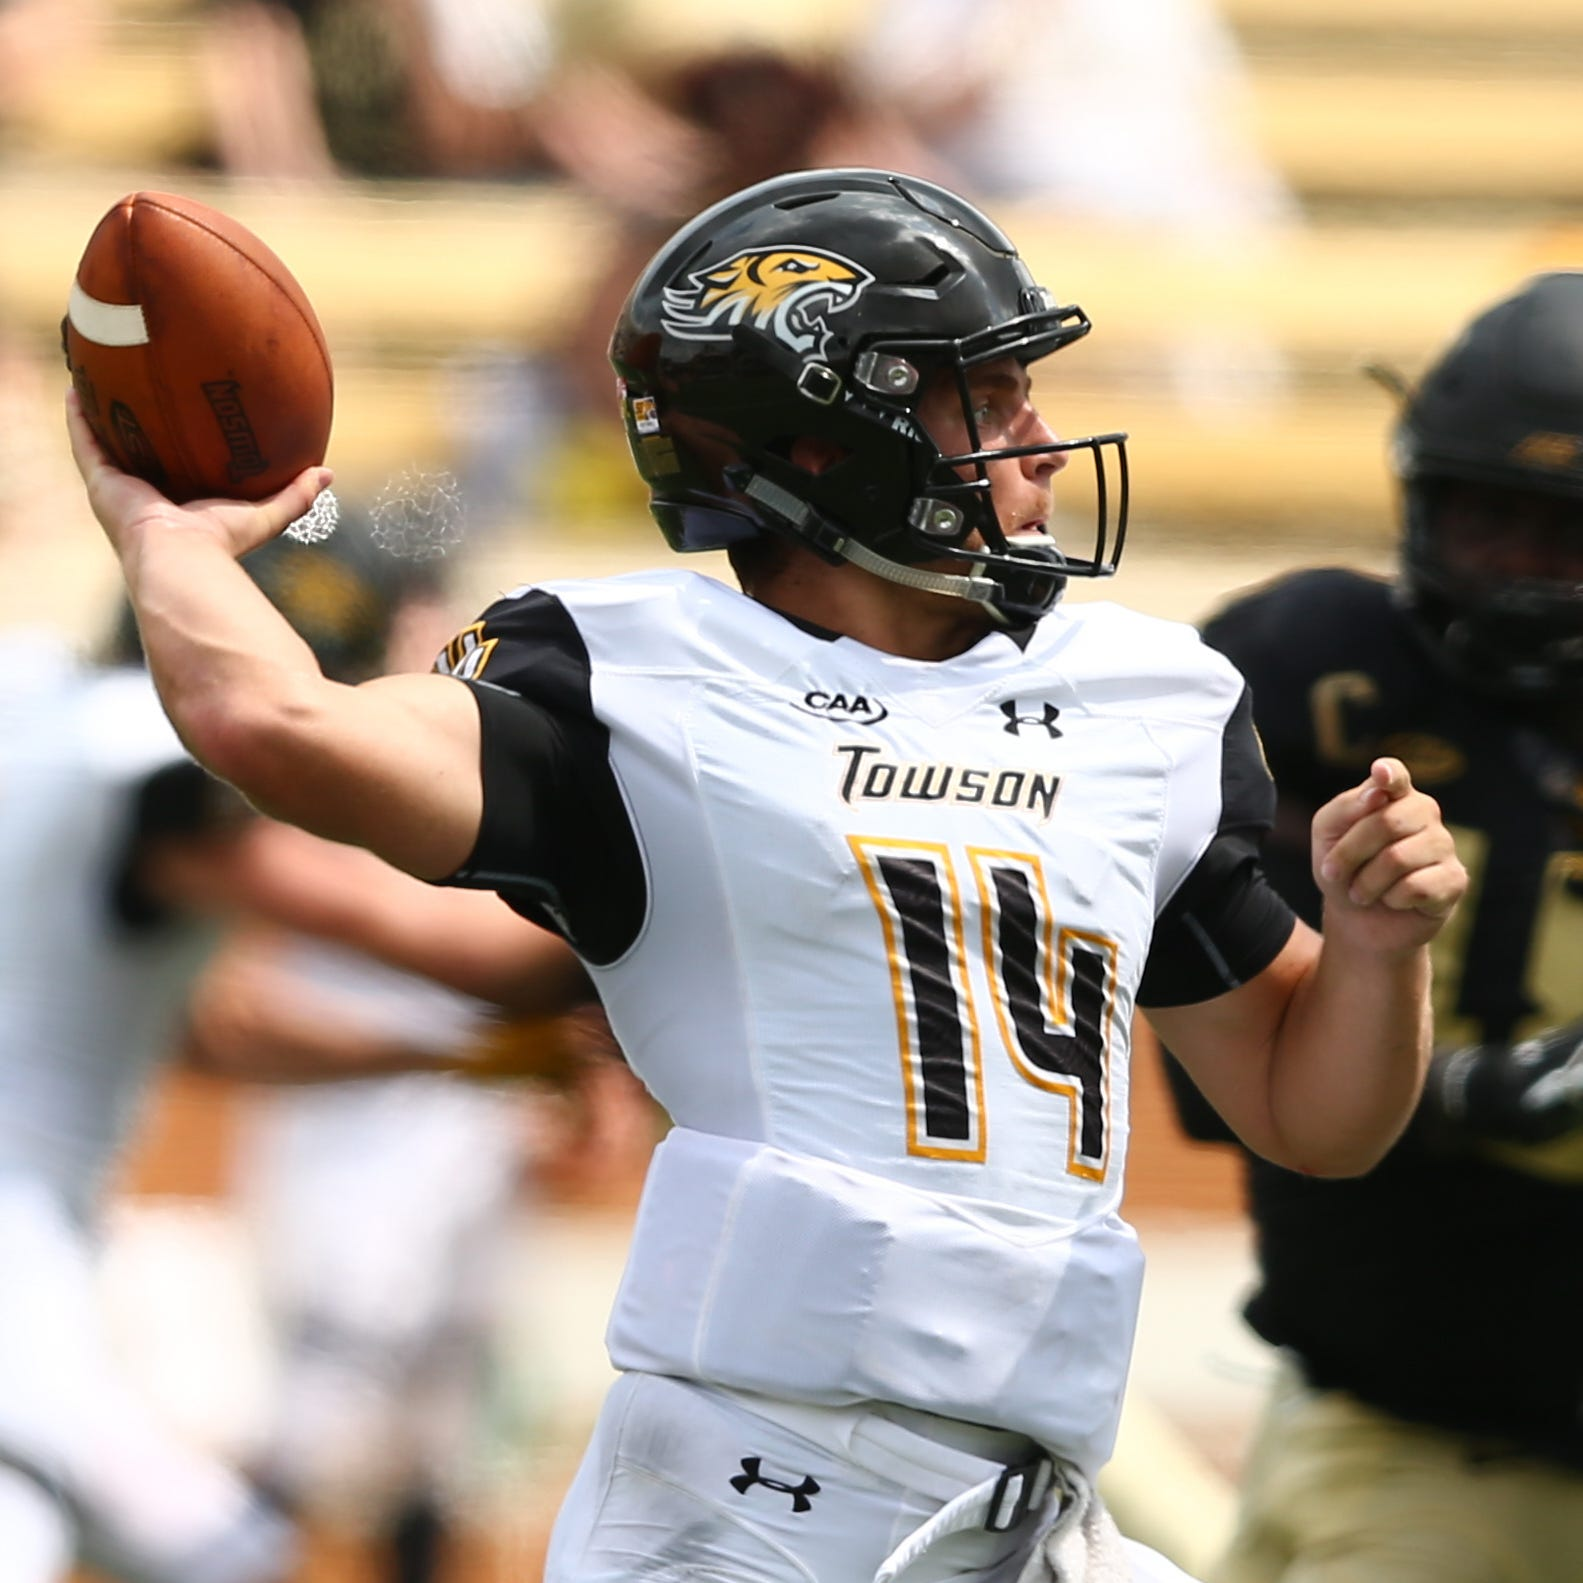 Eastern graduate Tom Flacco piling up numbers in first season at Towson